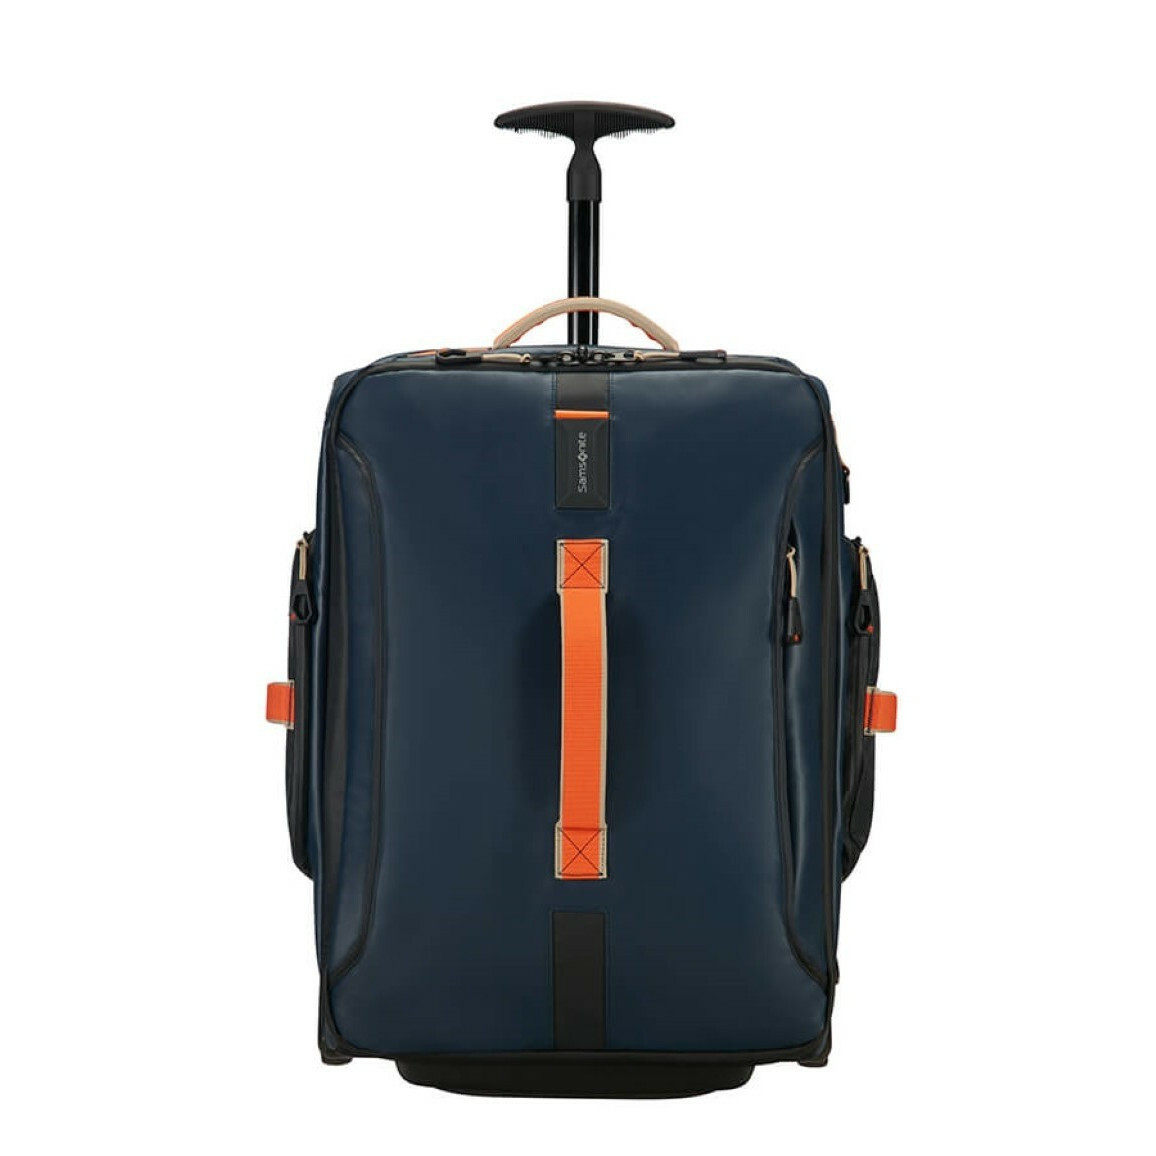 c60d1e69532 ... Samsonite PARADIVER LIGHT DUFFLE WHEELS 55, 01N-007 in de kleur 11 blue  nights ...